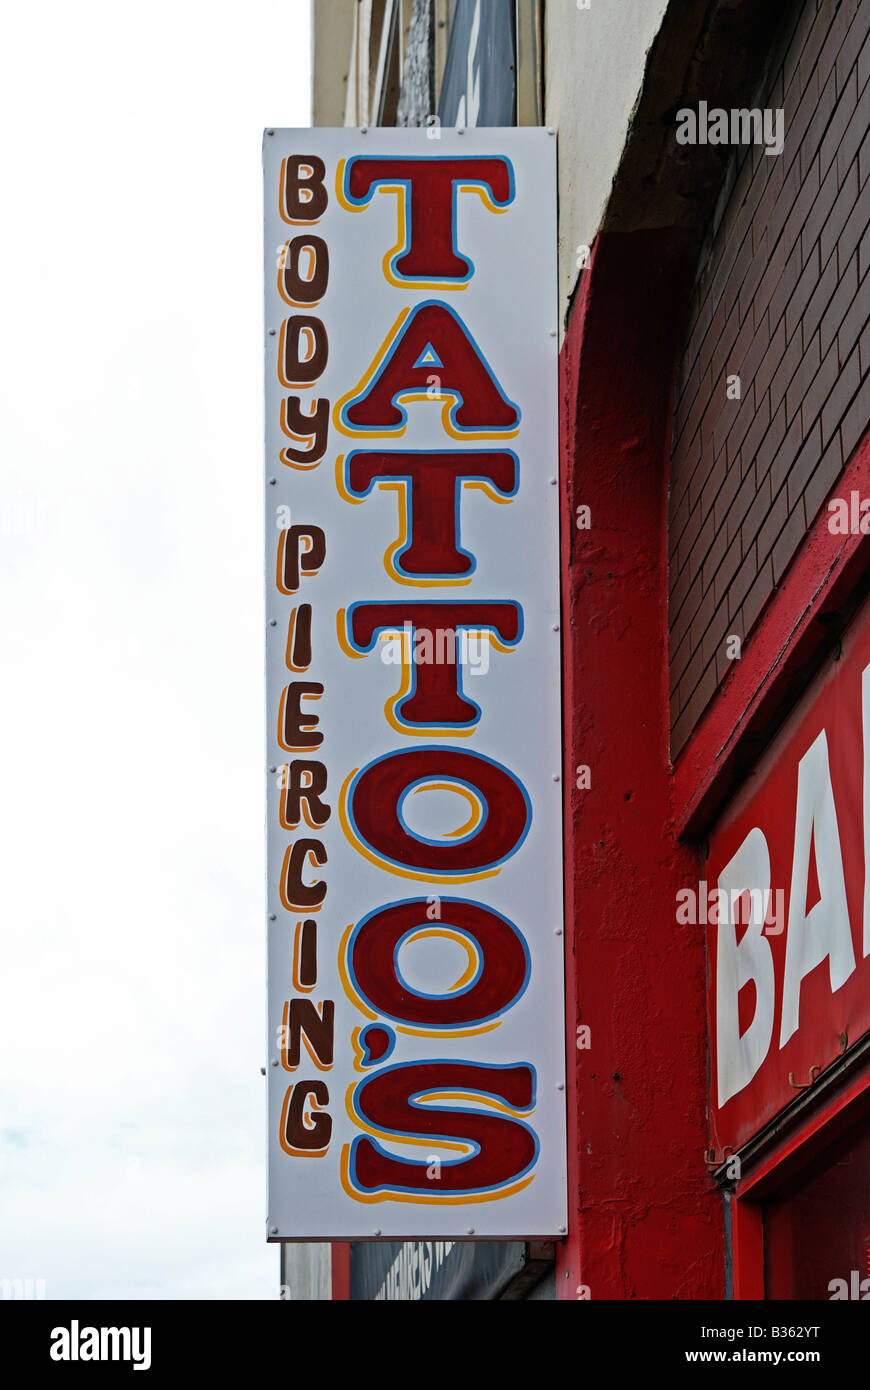 a sign advertising a tattooing parlour in blackpool,uk - Stock Image